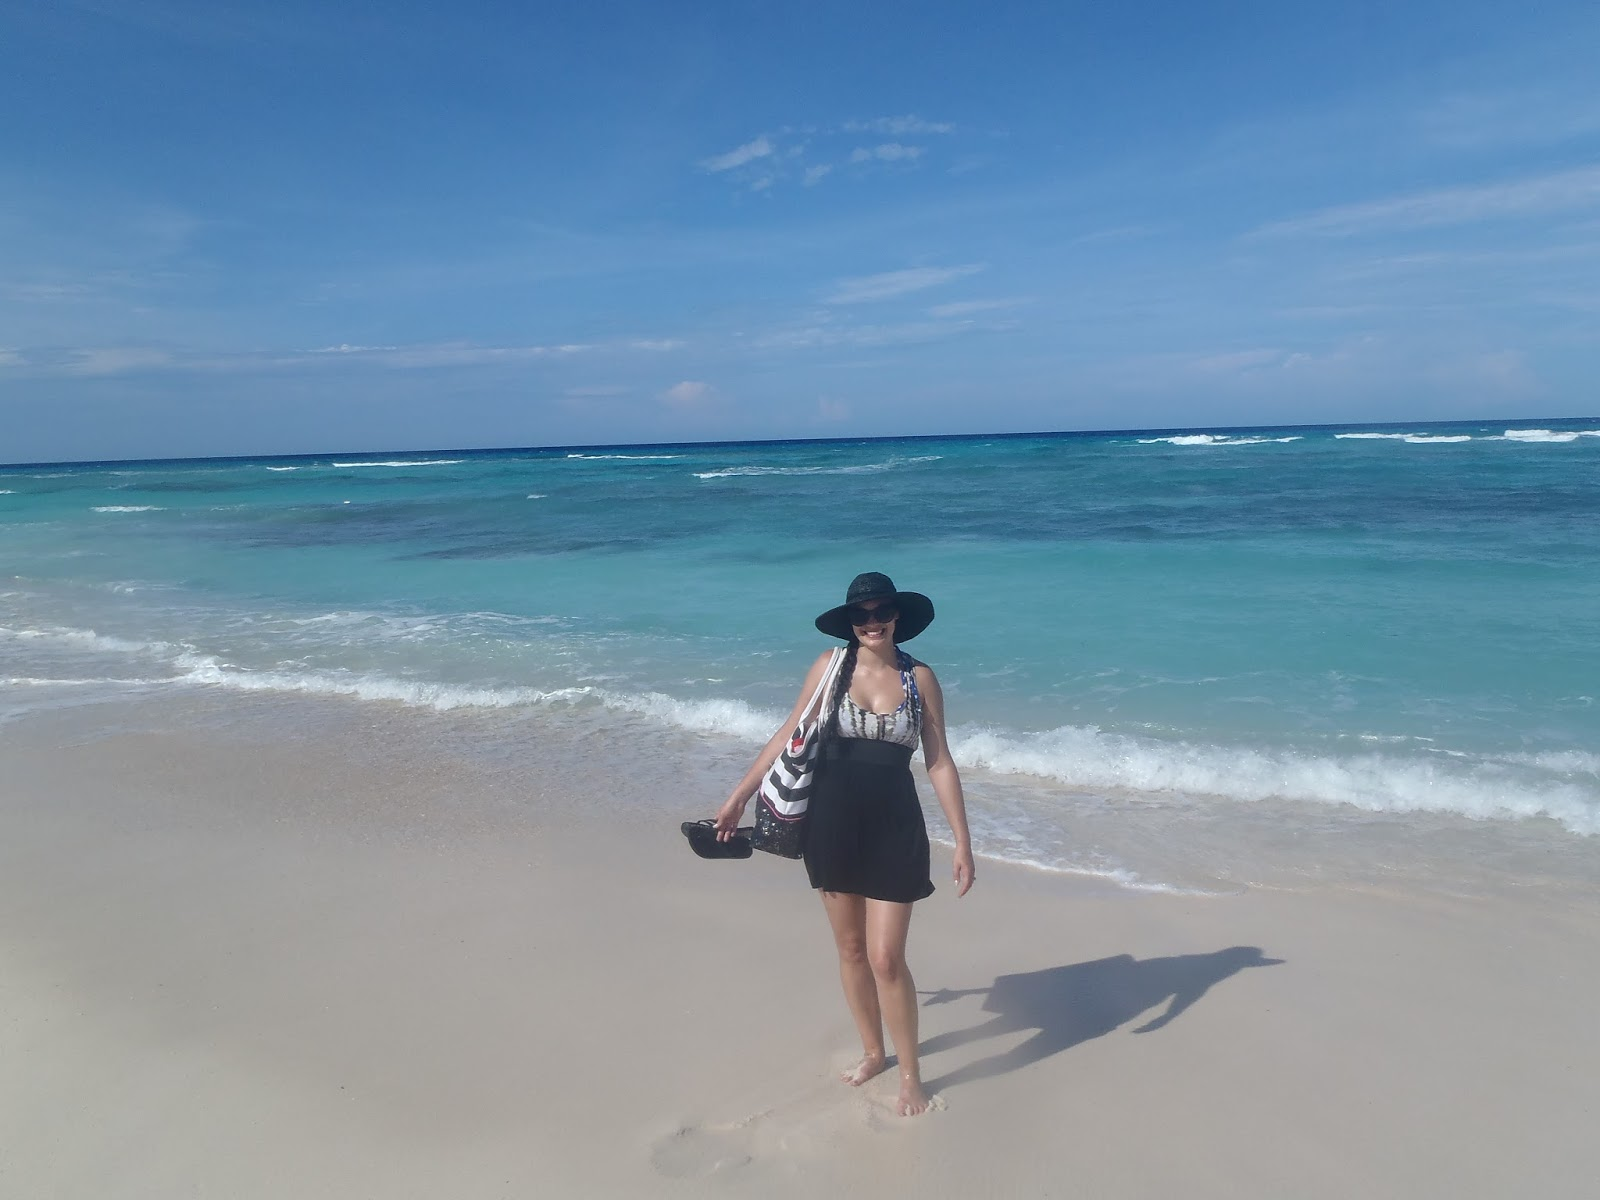 Grand Turk Turks and Caicos